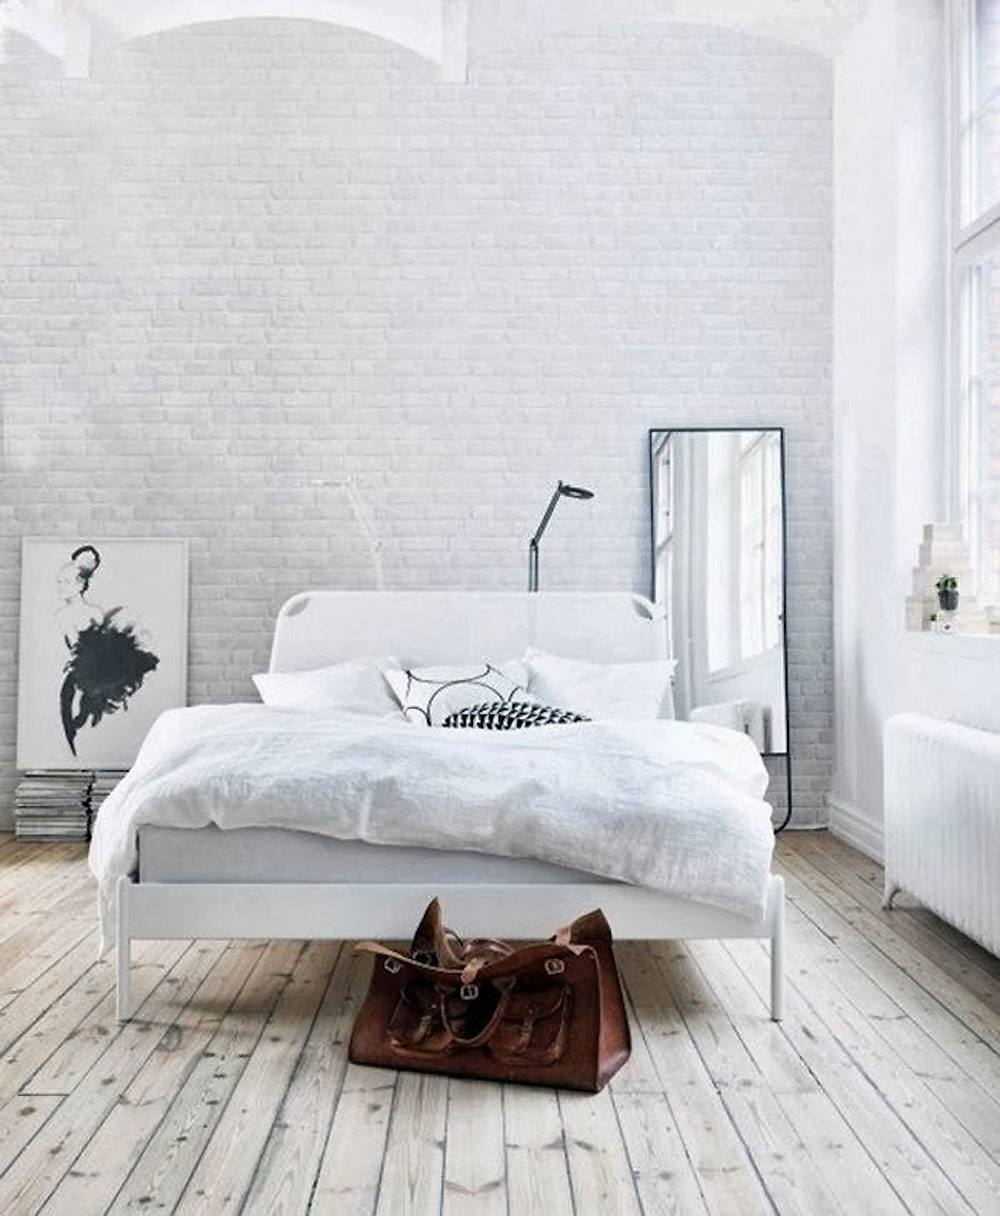 40 minimalist bedroom ideas less is more homelovr for Minimalist bedding ideas